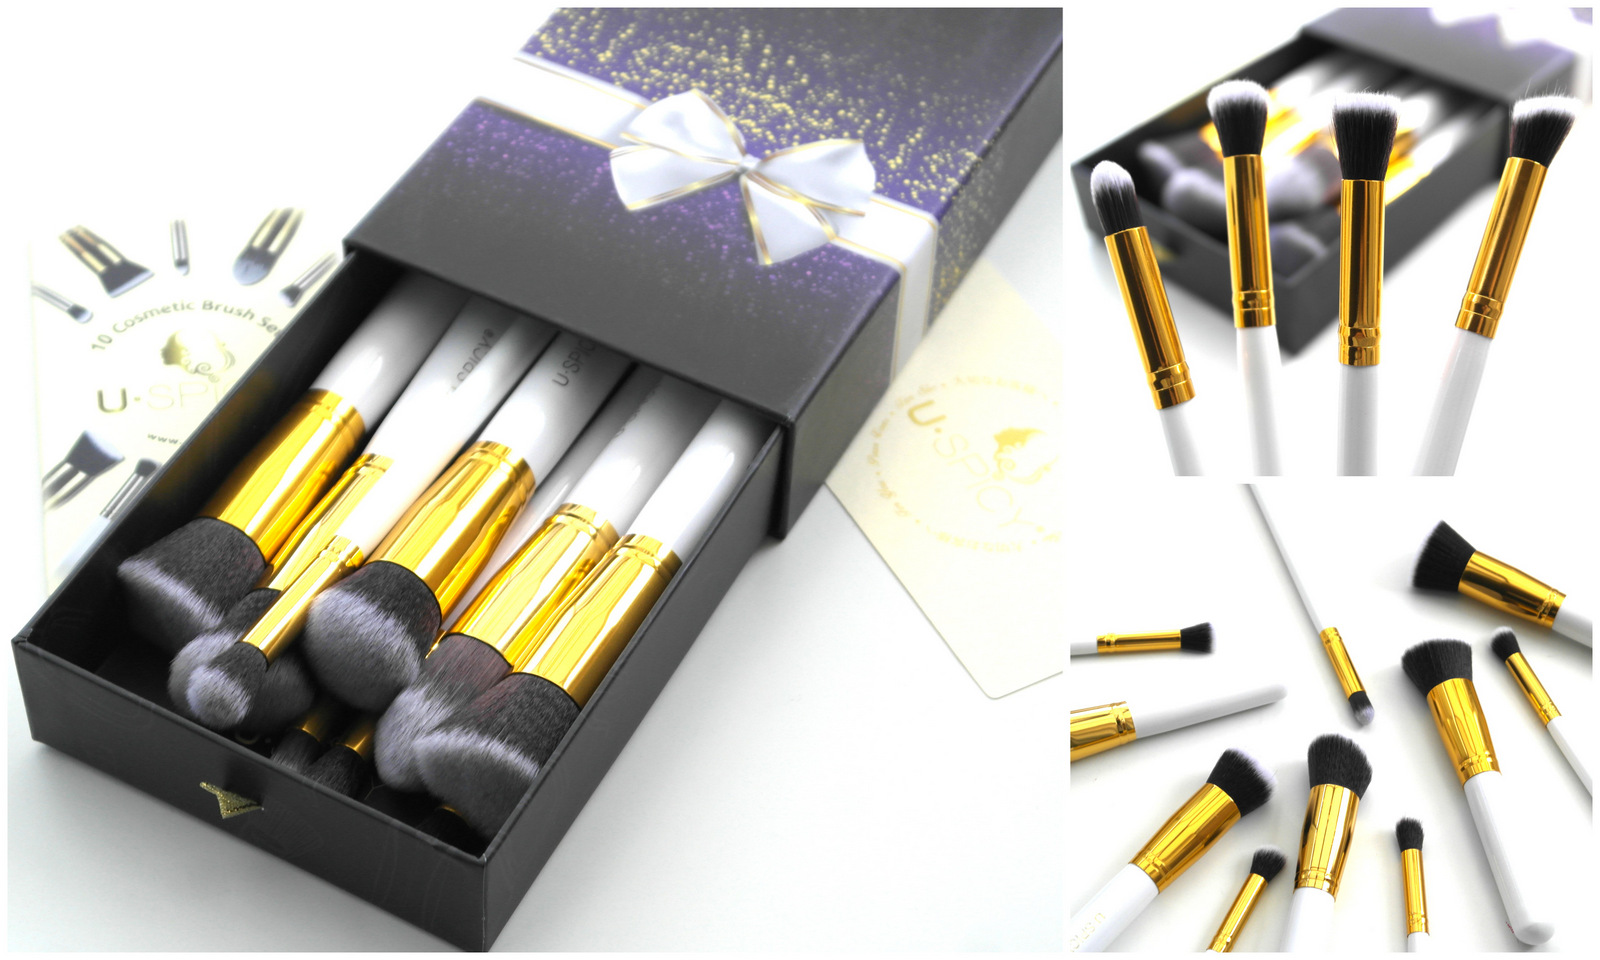 Uspicy 10 Piece Makeup Brush Set